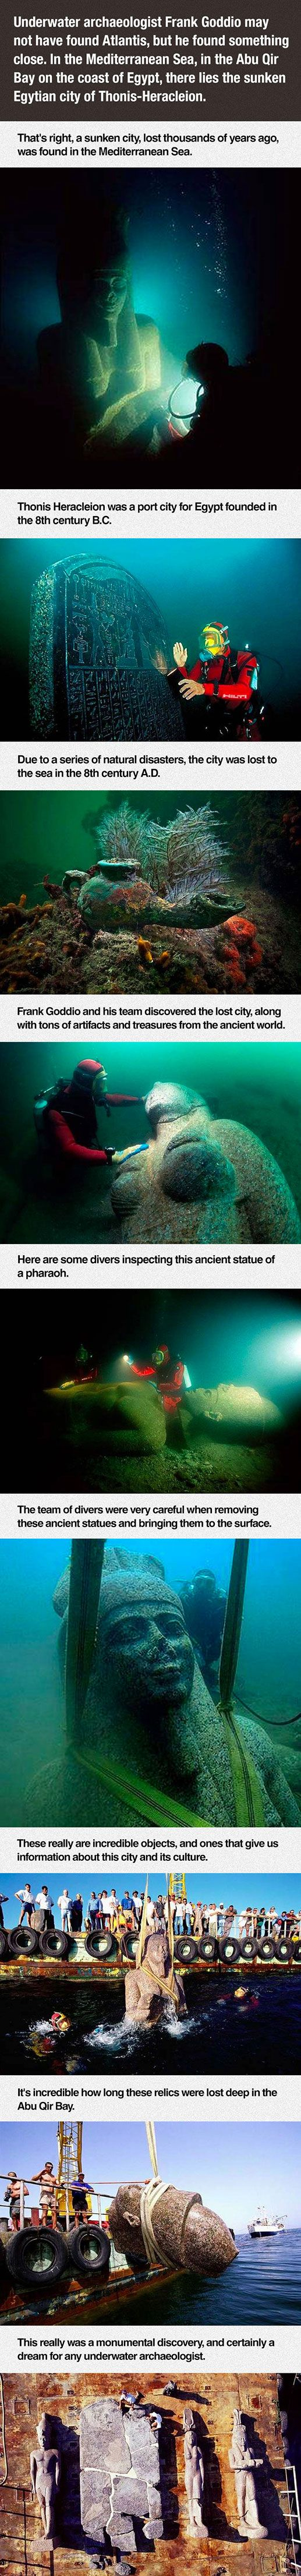 Best Heracleion Images On Pinterest Cities Animation And - Explorers discover ancient 1200 year old egyptian city